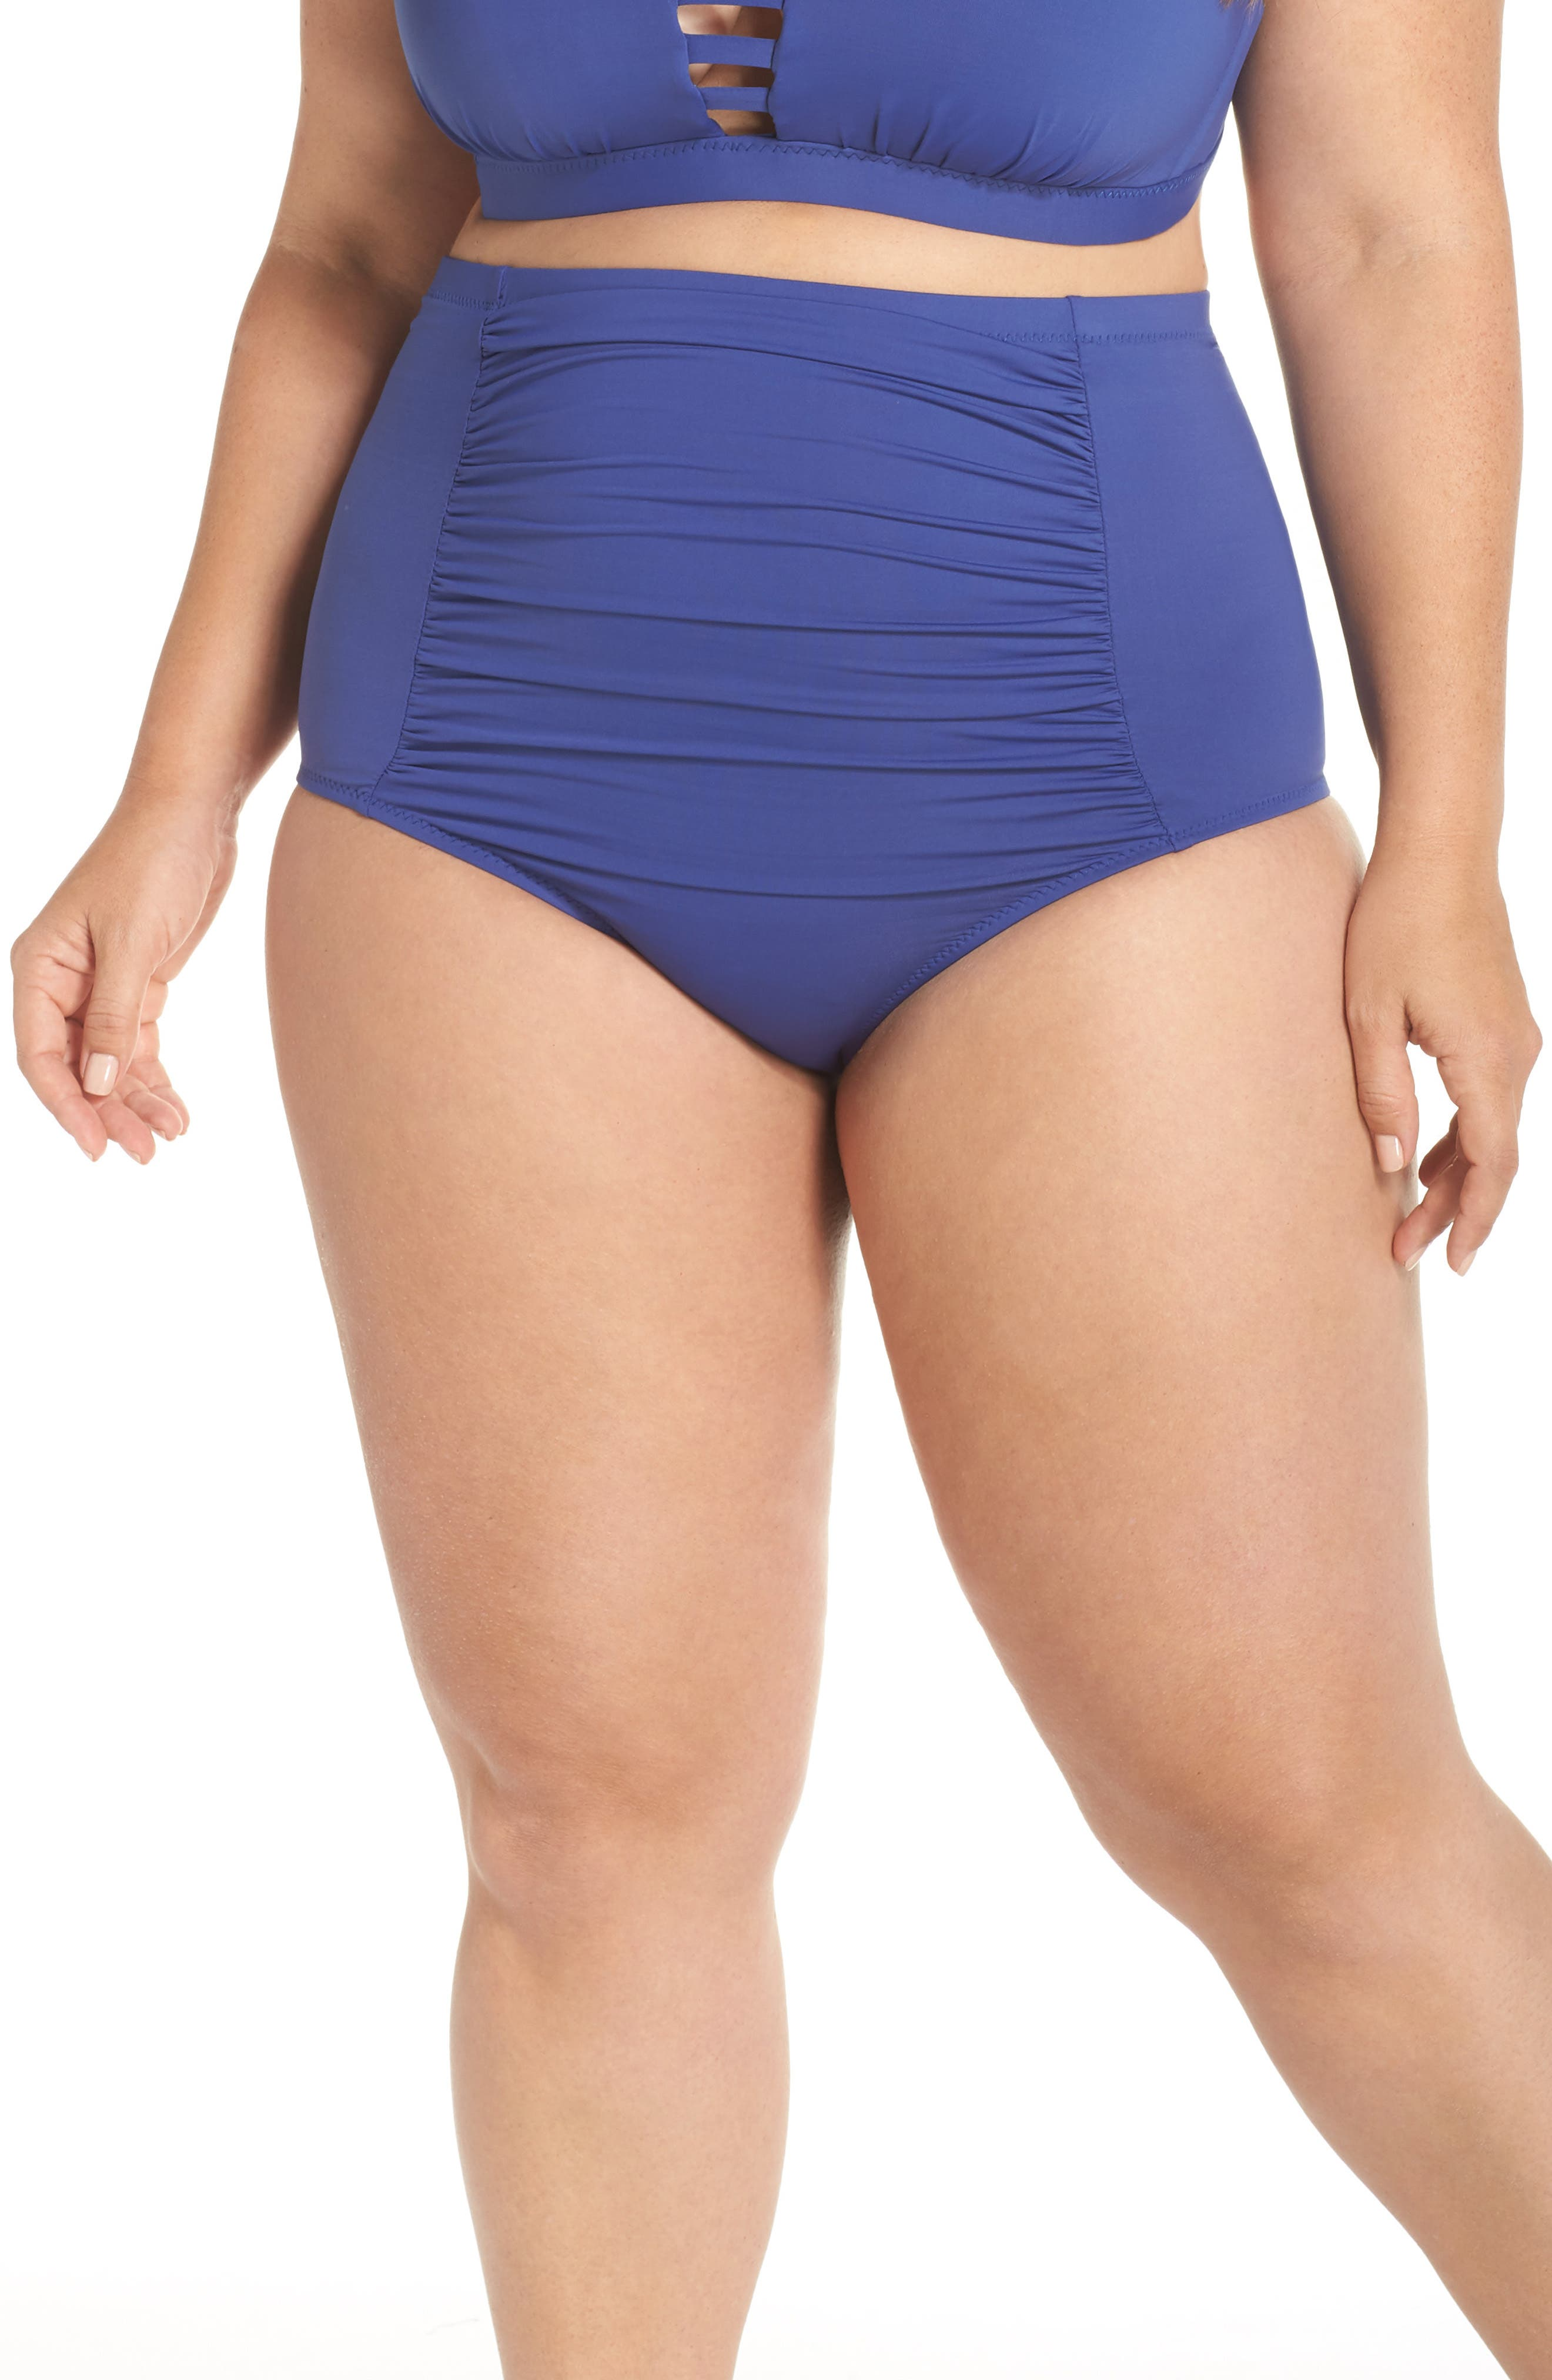 Plus Size Becca Etc. Color Code High Waist Bikini Bottoms, Blue